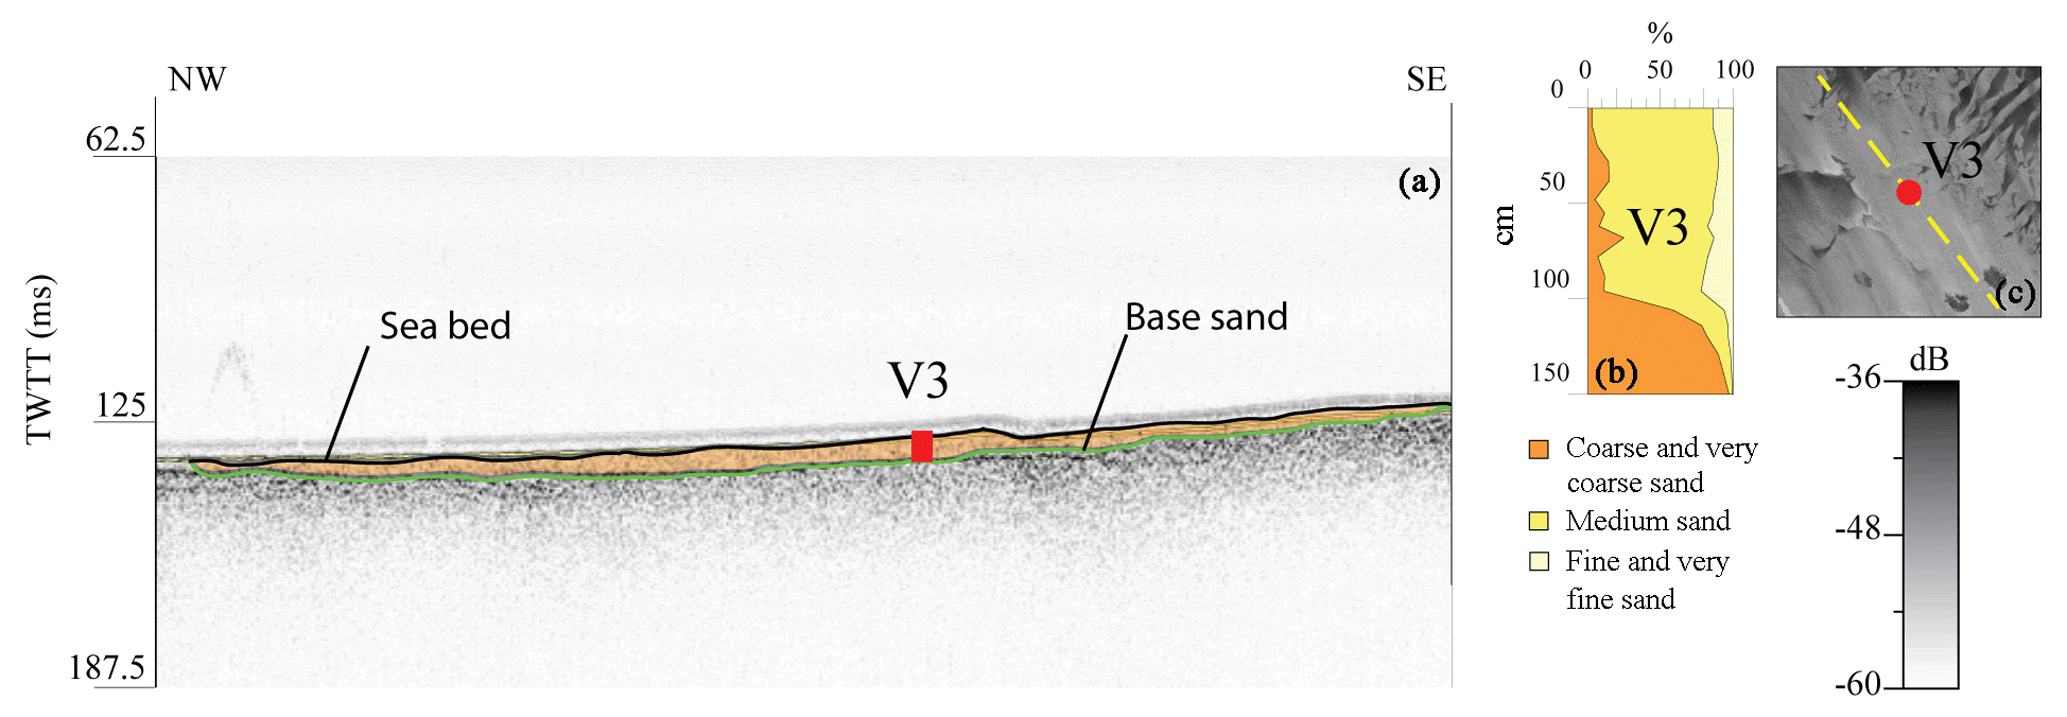 ESSD - Data set of submerged sand deposits organised in an